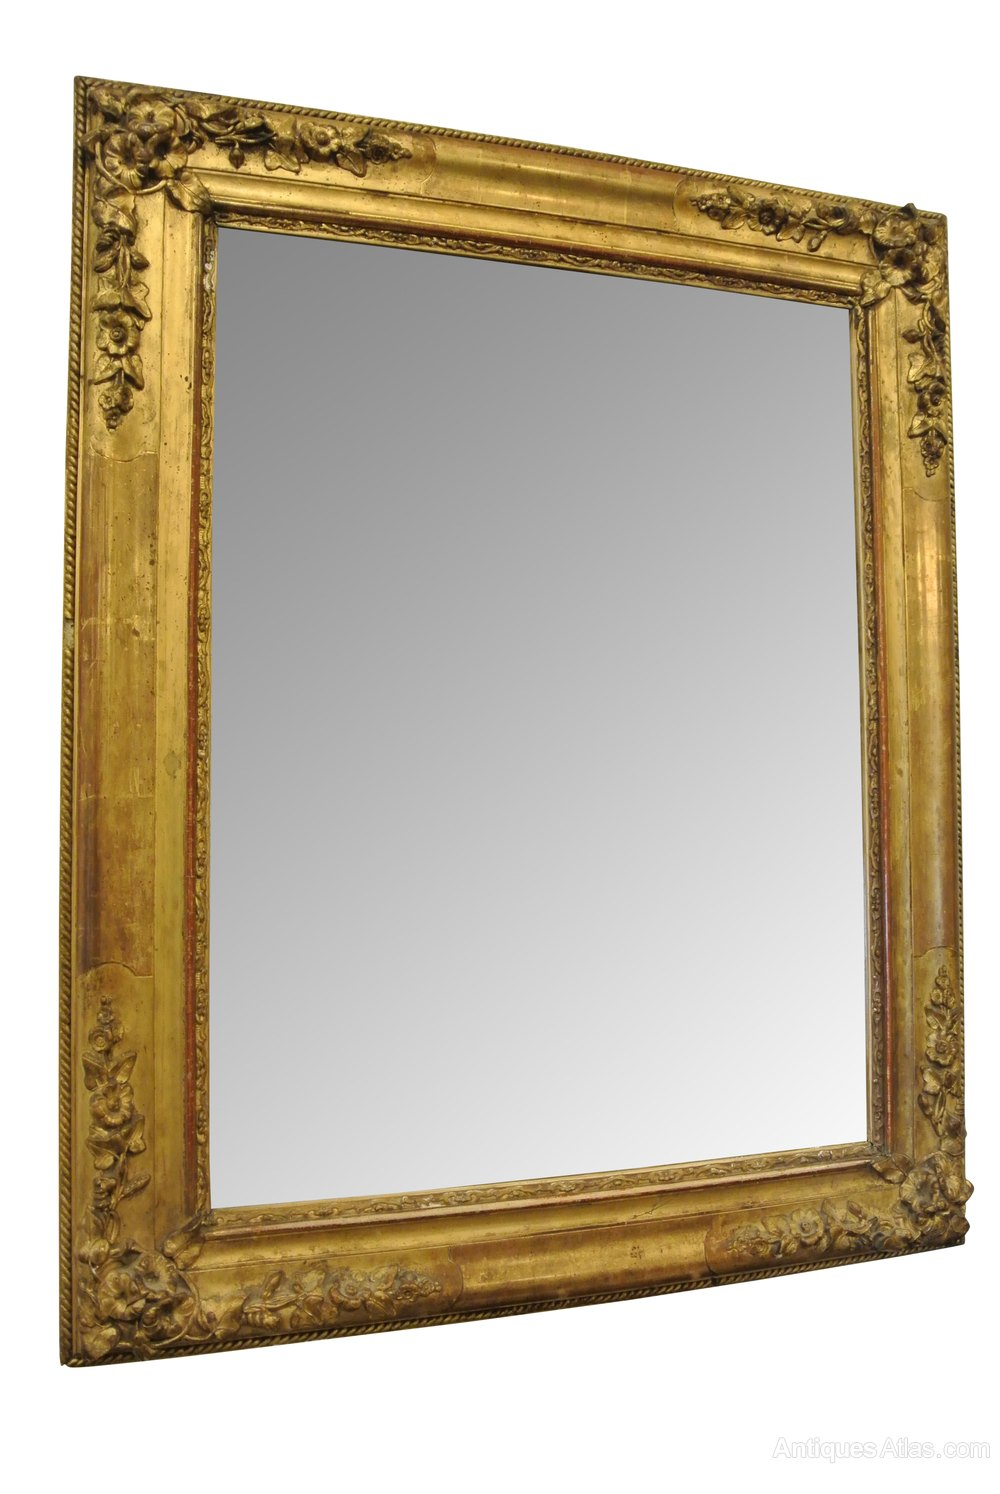 Antiques atlas small 19th c gilt mirror for What is a gilt mirror